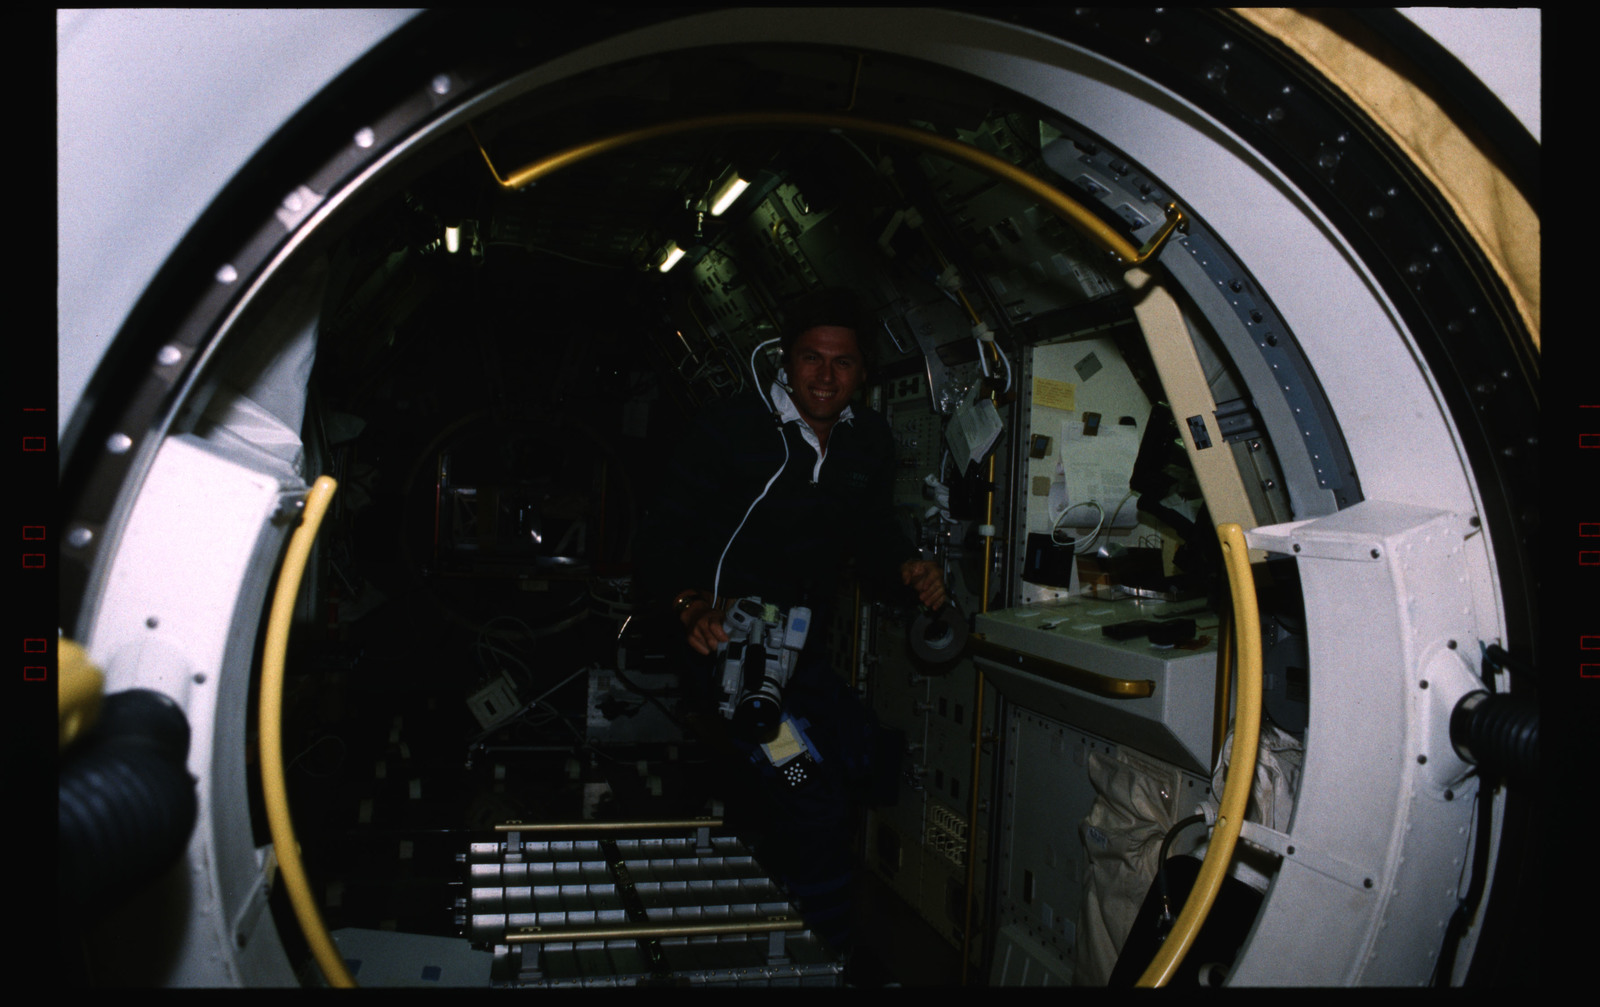 STS055-227-024 - STS-055 - Candid view of a crewmember in the D-2 Spacelab.